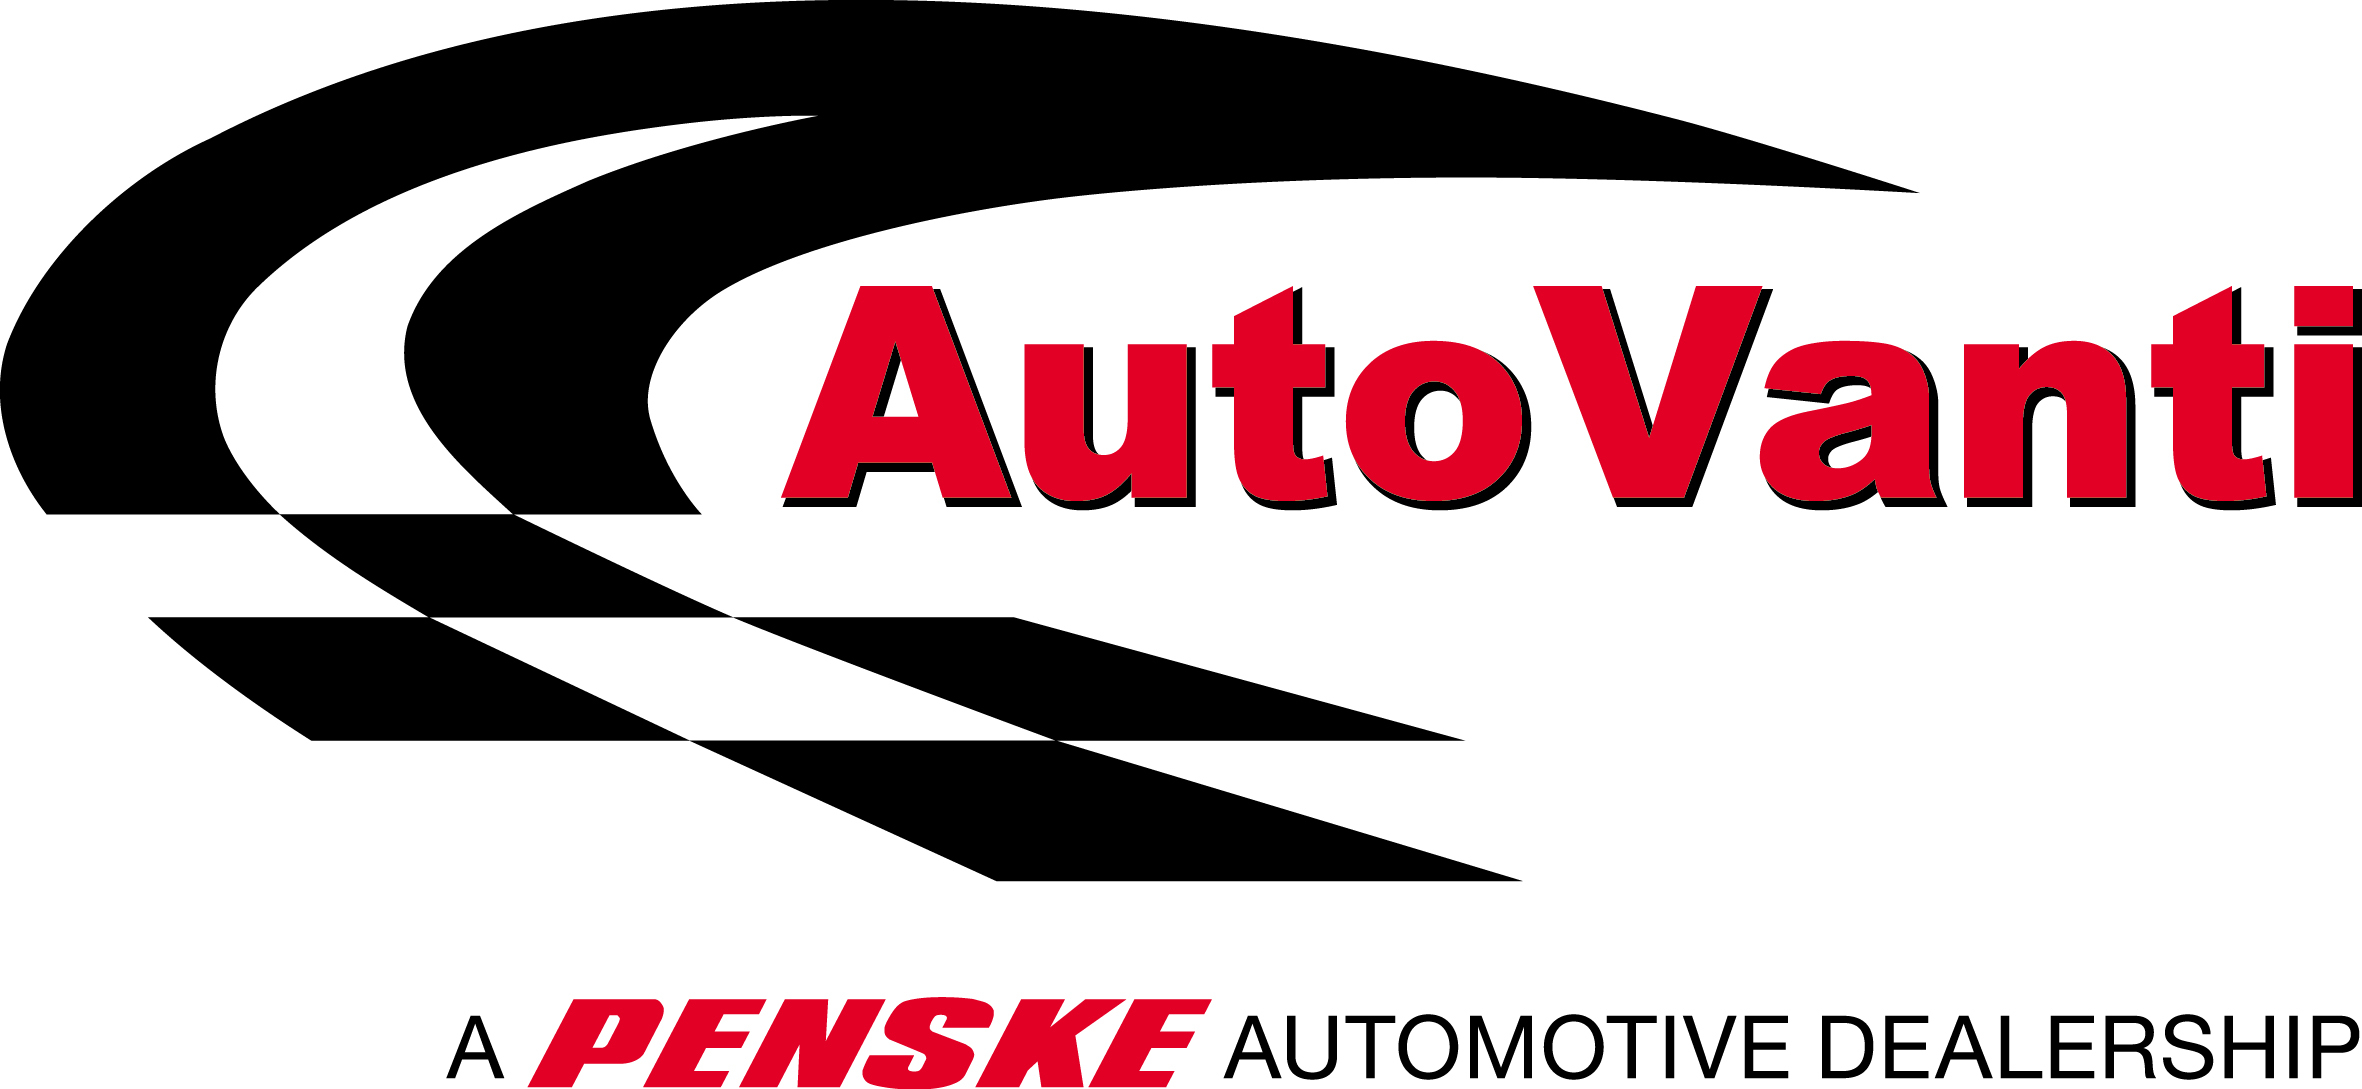 AutoVanti A PENSKE AUTOMOTIVE DEALERSHIP